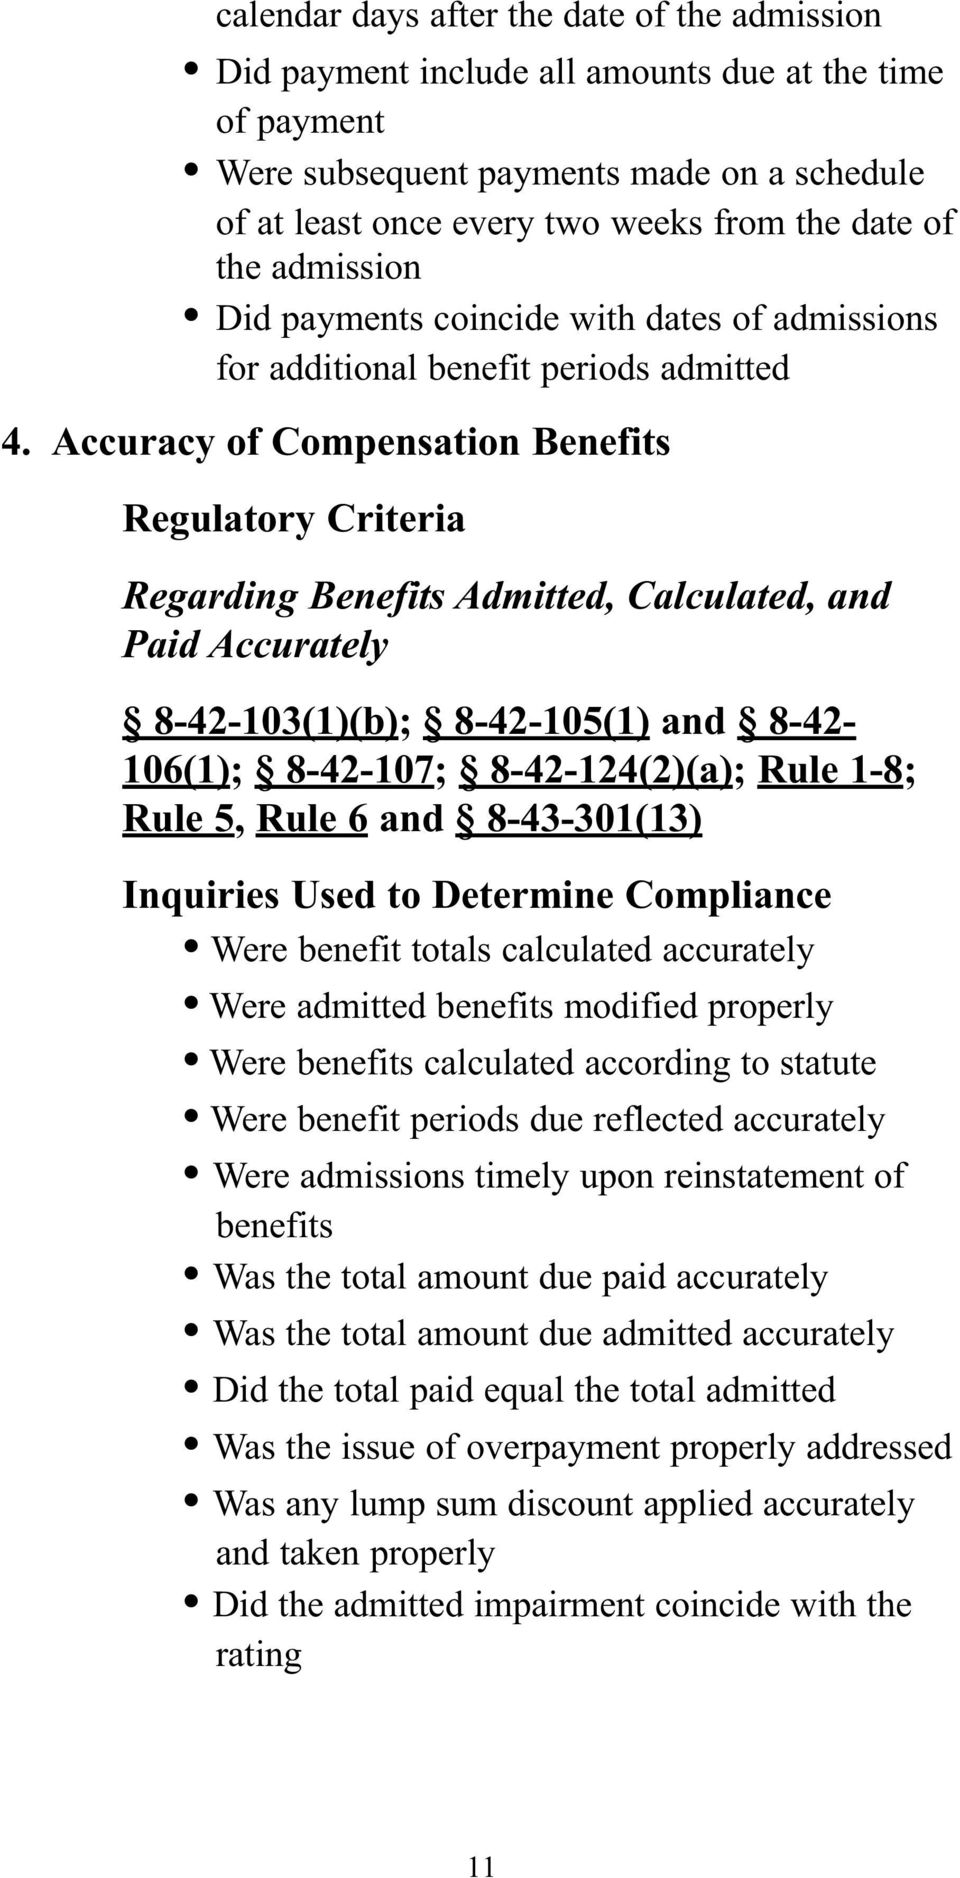 Accuracy of Compensation Benefits Regulatory Criteria Regarding Benefits Admitted, Calculated, and Paid Accurately 8-42-103(1)(b); 8-42-105(1) and 8-42- 106(1); 8-42-107; 8-42-124(2)(a); Rule 1-8;